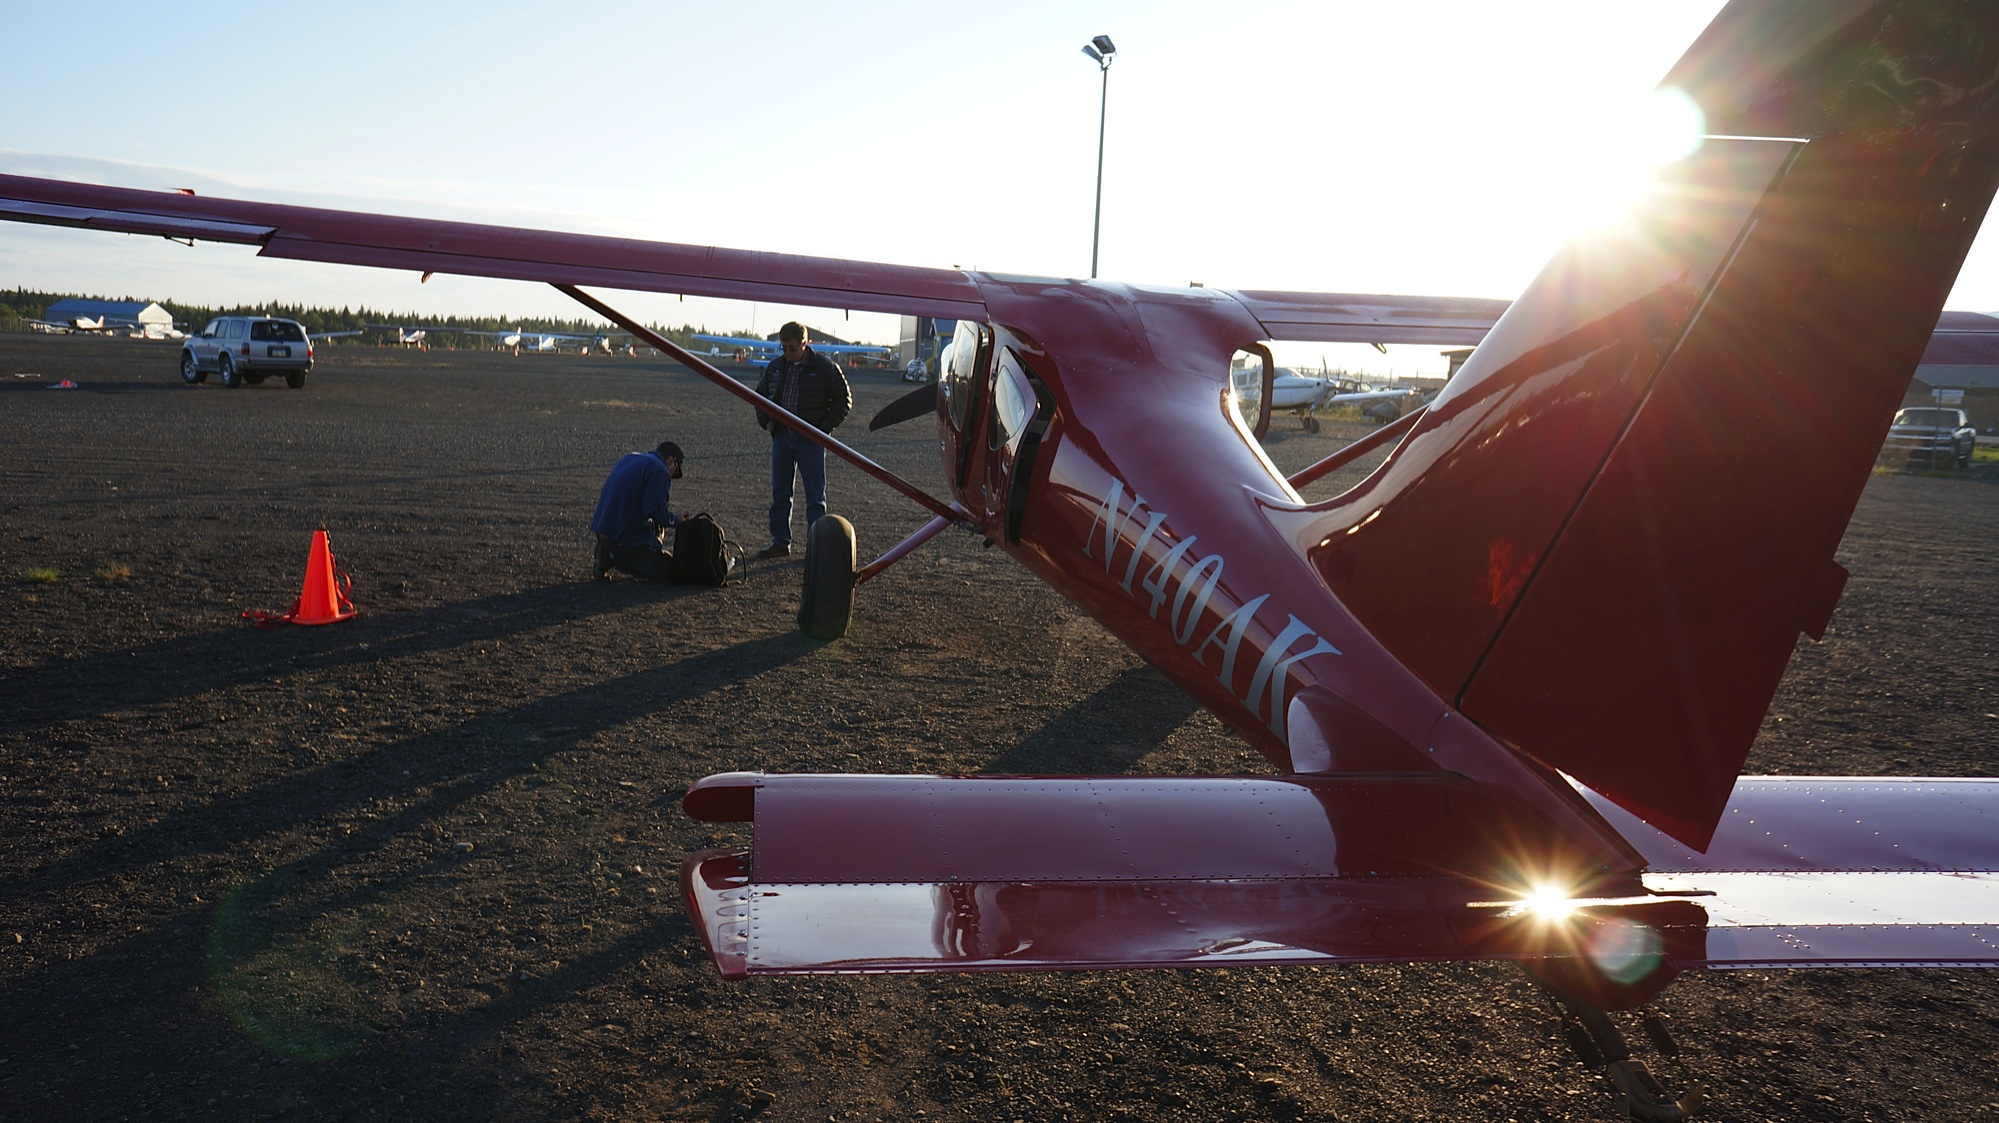 Morning sun glints of Russell's plane